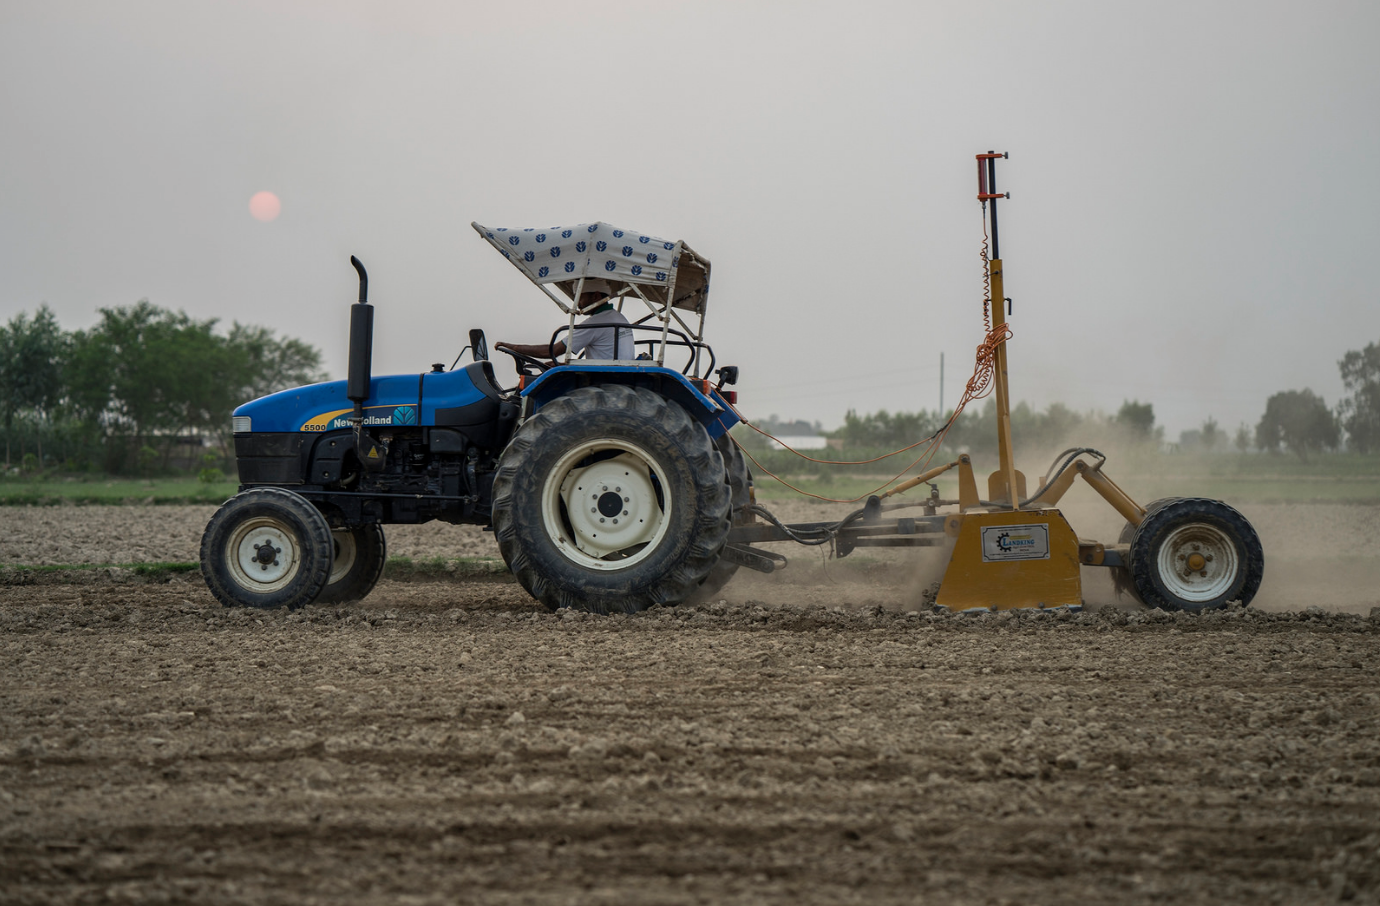 Farmer Krishna Chandra Yadav laser levels land for rice planting in Sirkohiya, Bardiya. Laser leveling is one of many climate-friendly tools that conserves water and helps farmers plant their crops more precisely and efficiently. Photo: P.Lowe/CIMMYT